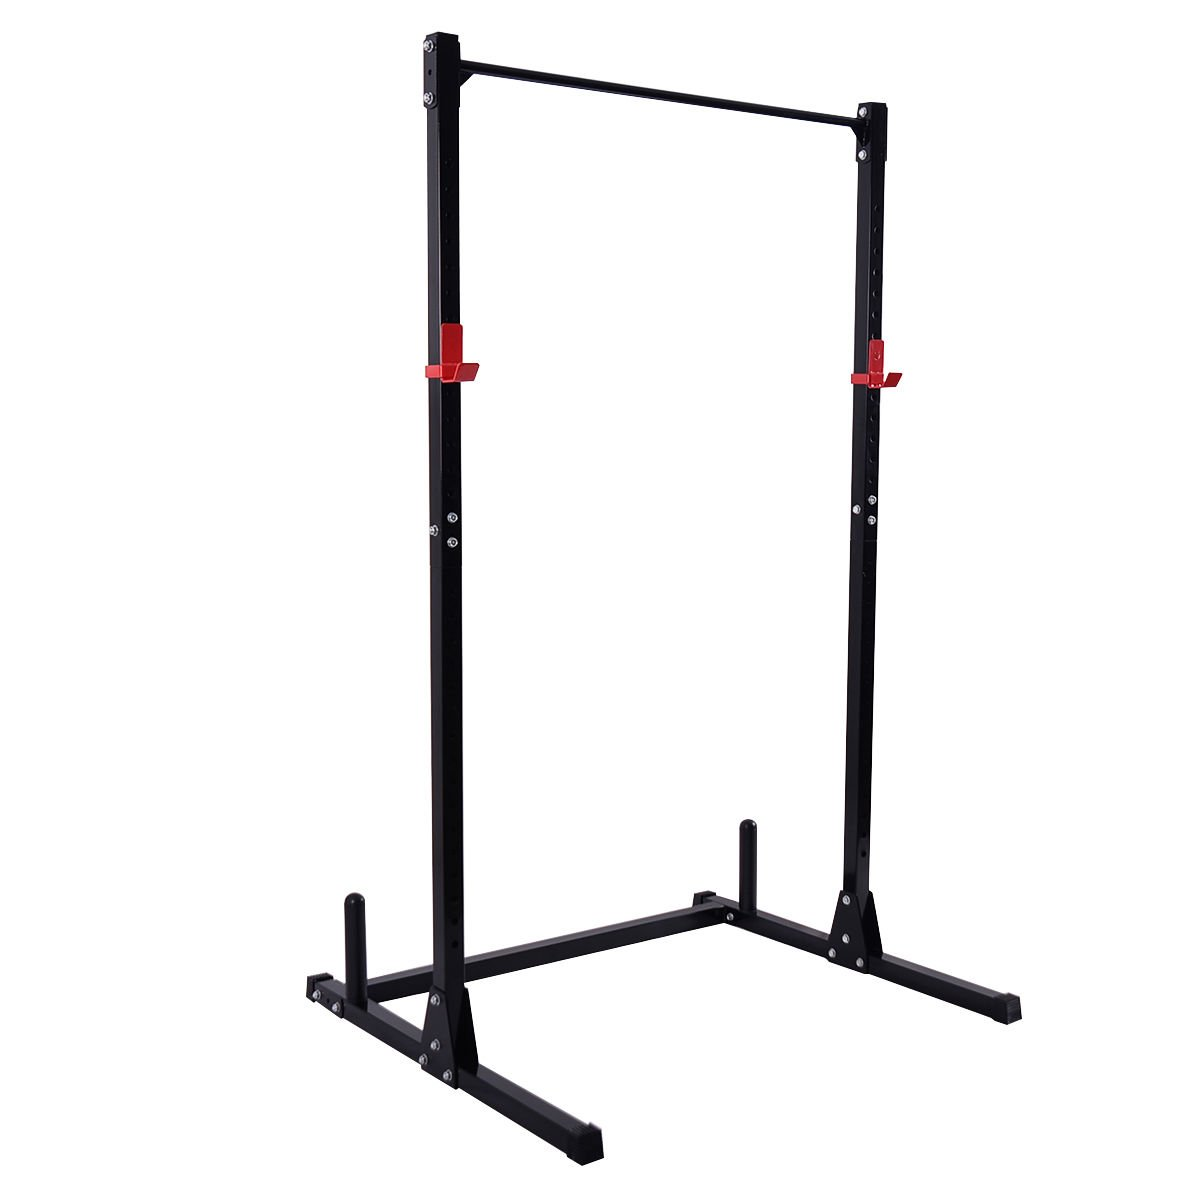 Goplus Adjustable Power Rack Exercise Stand Fitness Squat Bench Curl Pull Up Cage Weight Stand for Strength Deadlift Power Lifting Weightlifting in Home, Office and Gym